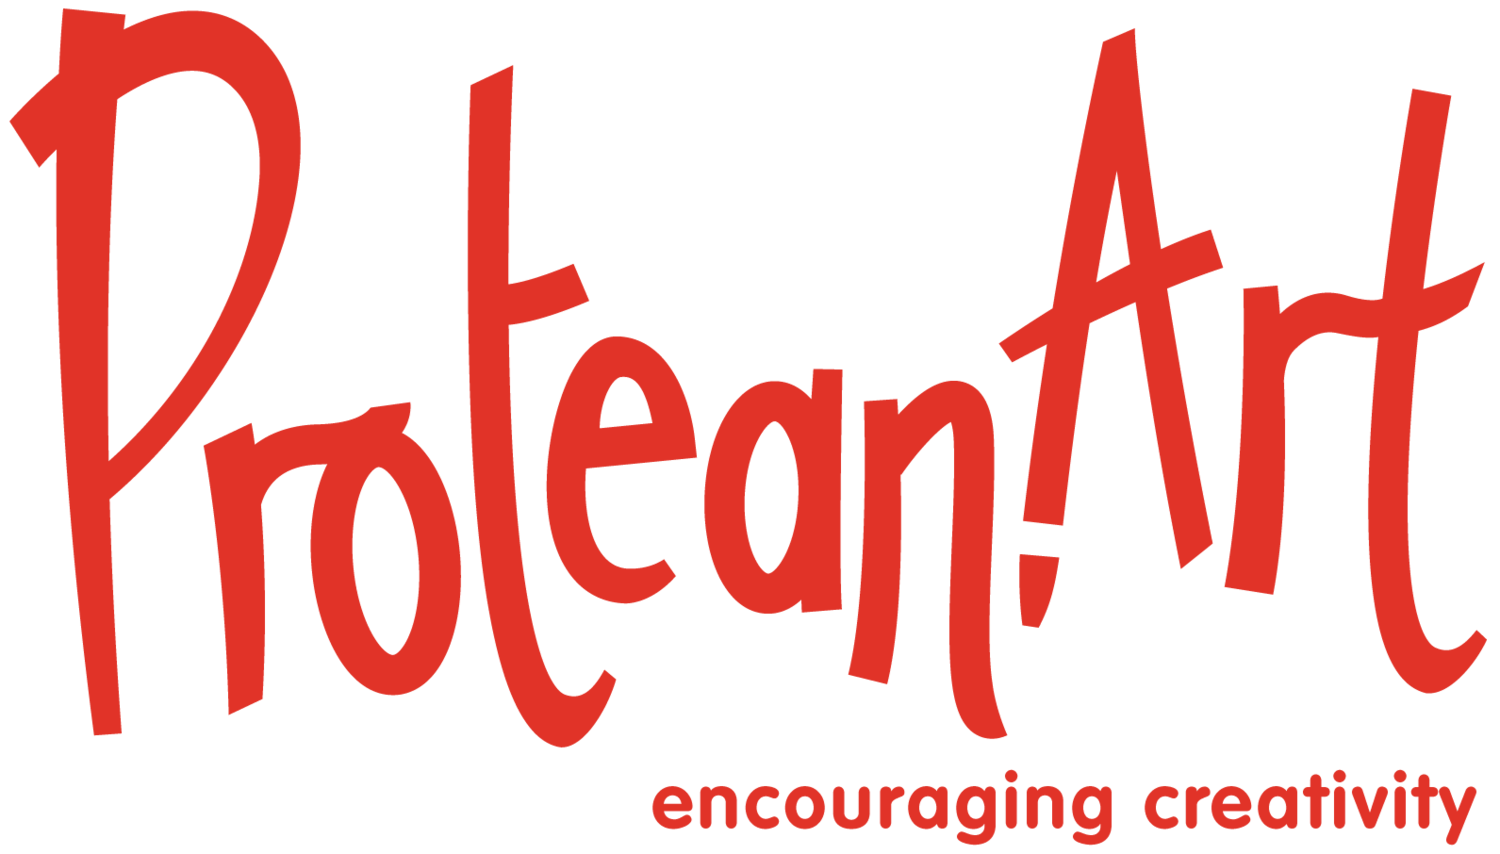 ProteanArt - Encouraging creativity